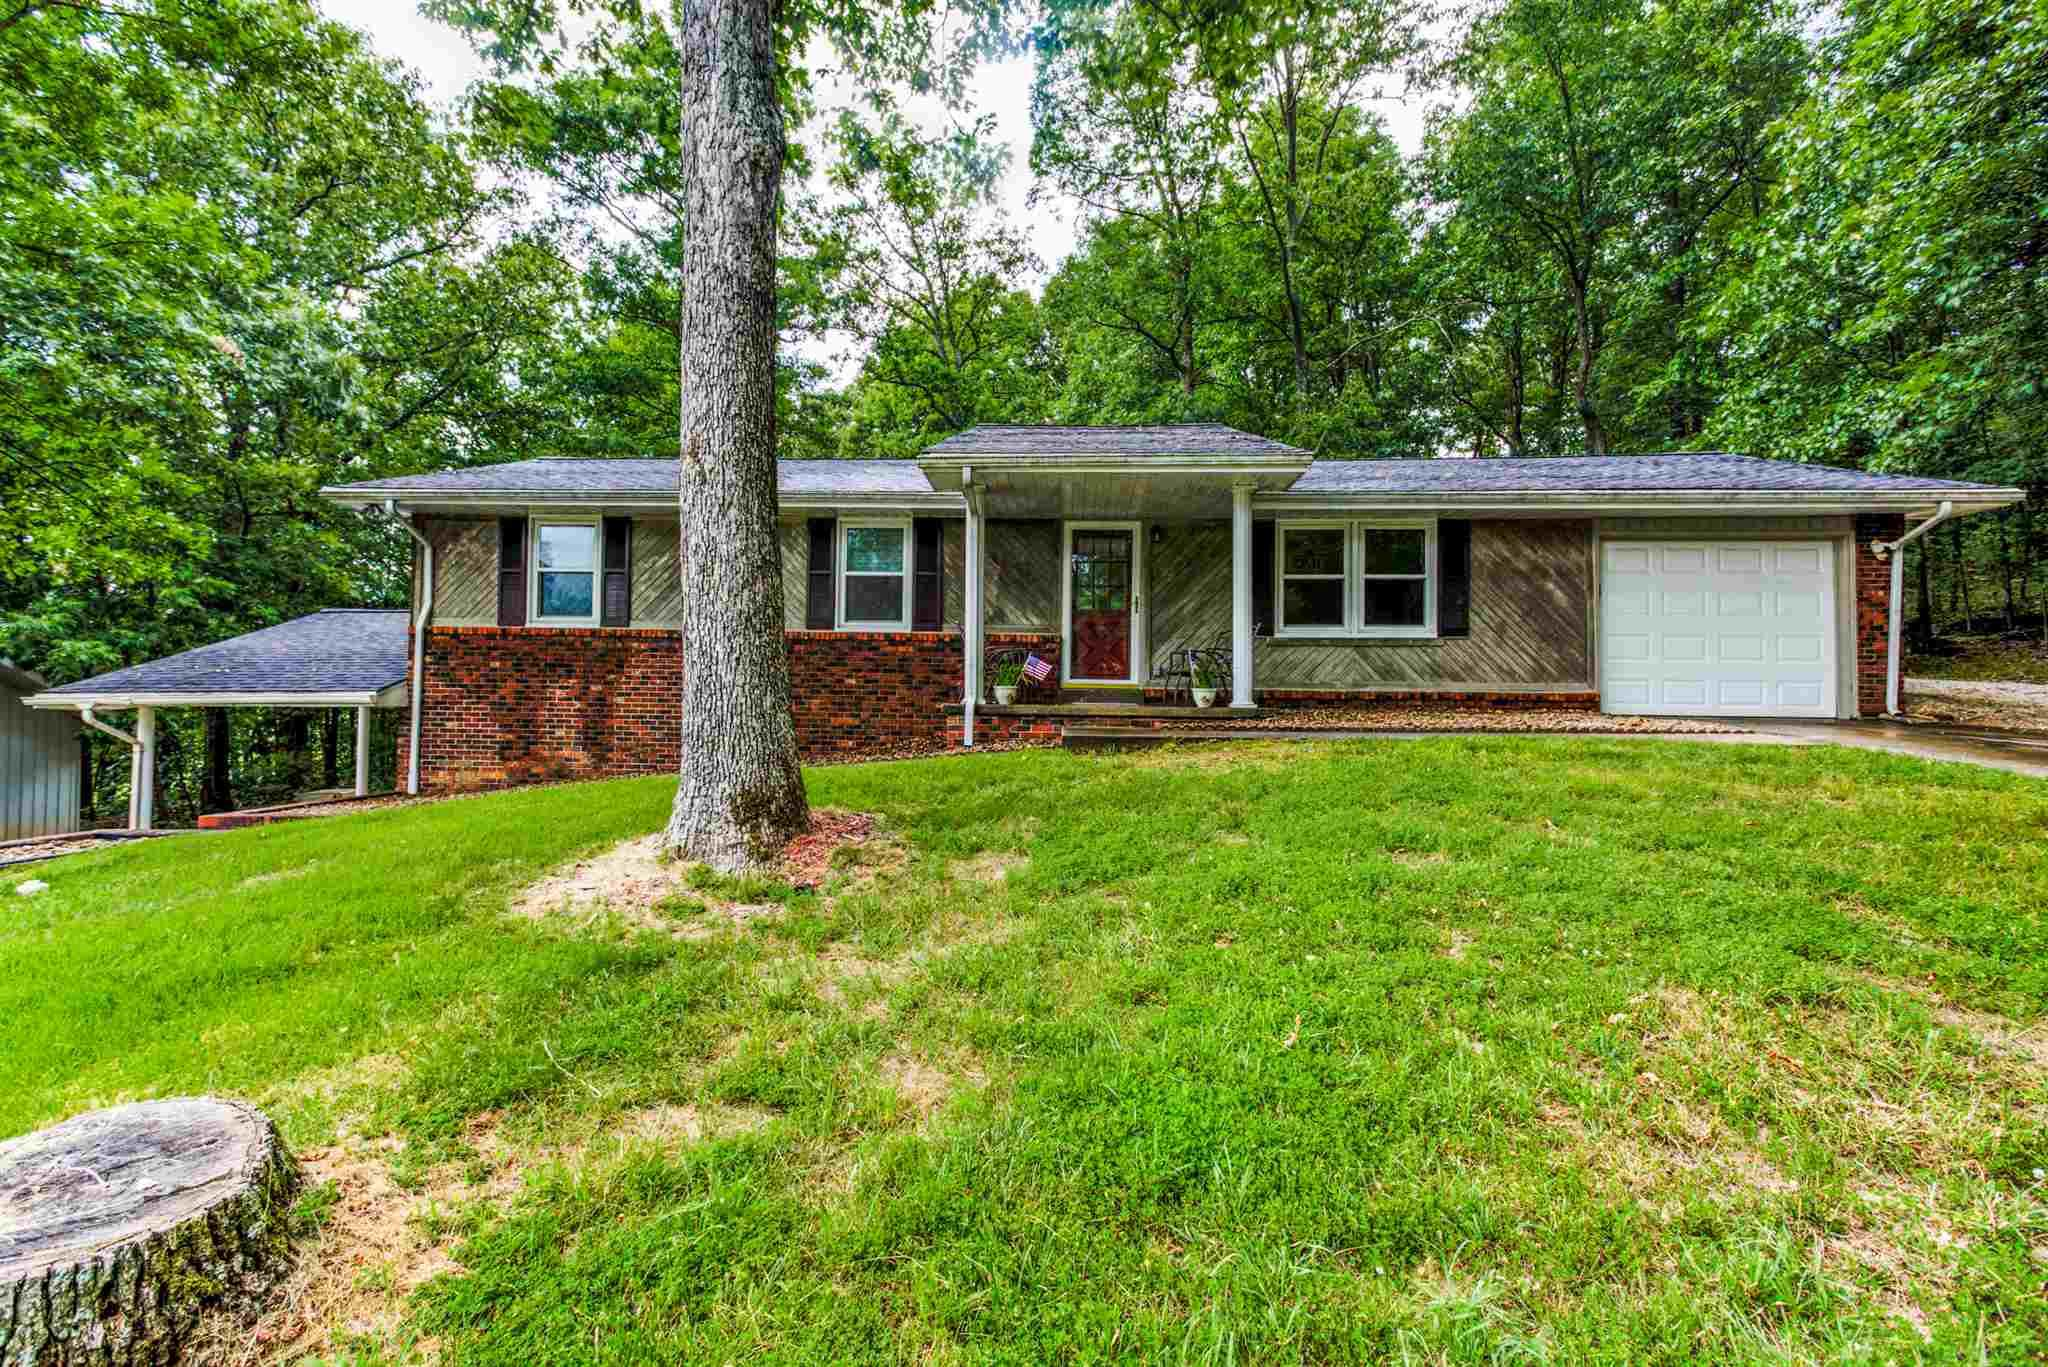 *****Lakeview home in the front of the village*****Incredible ranch home with a LARGE basement for a second family room. This brick ranch features 3 bedroom upstairs, one FULL bath and a half bath in the basement, open floor plan in main area, walkout basement, and nicely updated to move right into. The outside is wonderful. You have a one car garage and carport, nice wooded lot, full length deck of house, two driveways for extra parking, private backyard, lakeview from your front, large lot almost a half an acre. Home has been remodeled. R40 Ceiling insulation and closed cell foam insulation added in 2007. New Roof.  New Windows.  Water View.  Pictures coming July 8th for inside.  Lot 62 on Mistletoe Drive can also be included in the purchase as well.